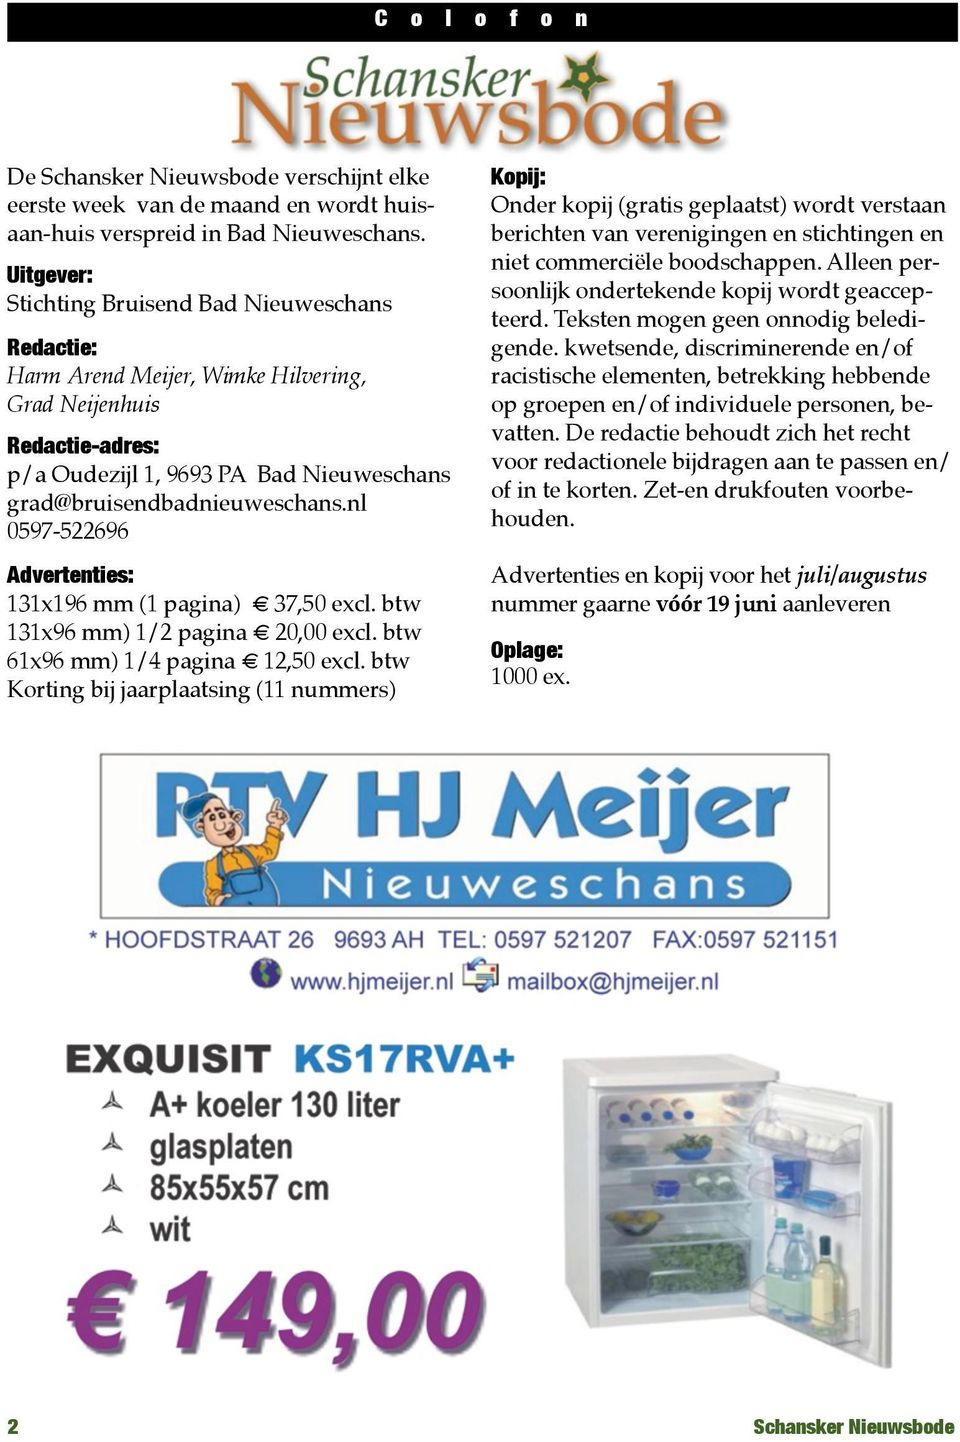 nl 0597-522696 Advertenties: 131x196 mm (1 pagina) 37,50 excl. btw 131x96 mm) 1/2 pagina 20,00 excl. btw 61x96 mm) 1/4 pagina 12,50 excl.